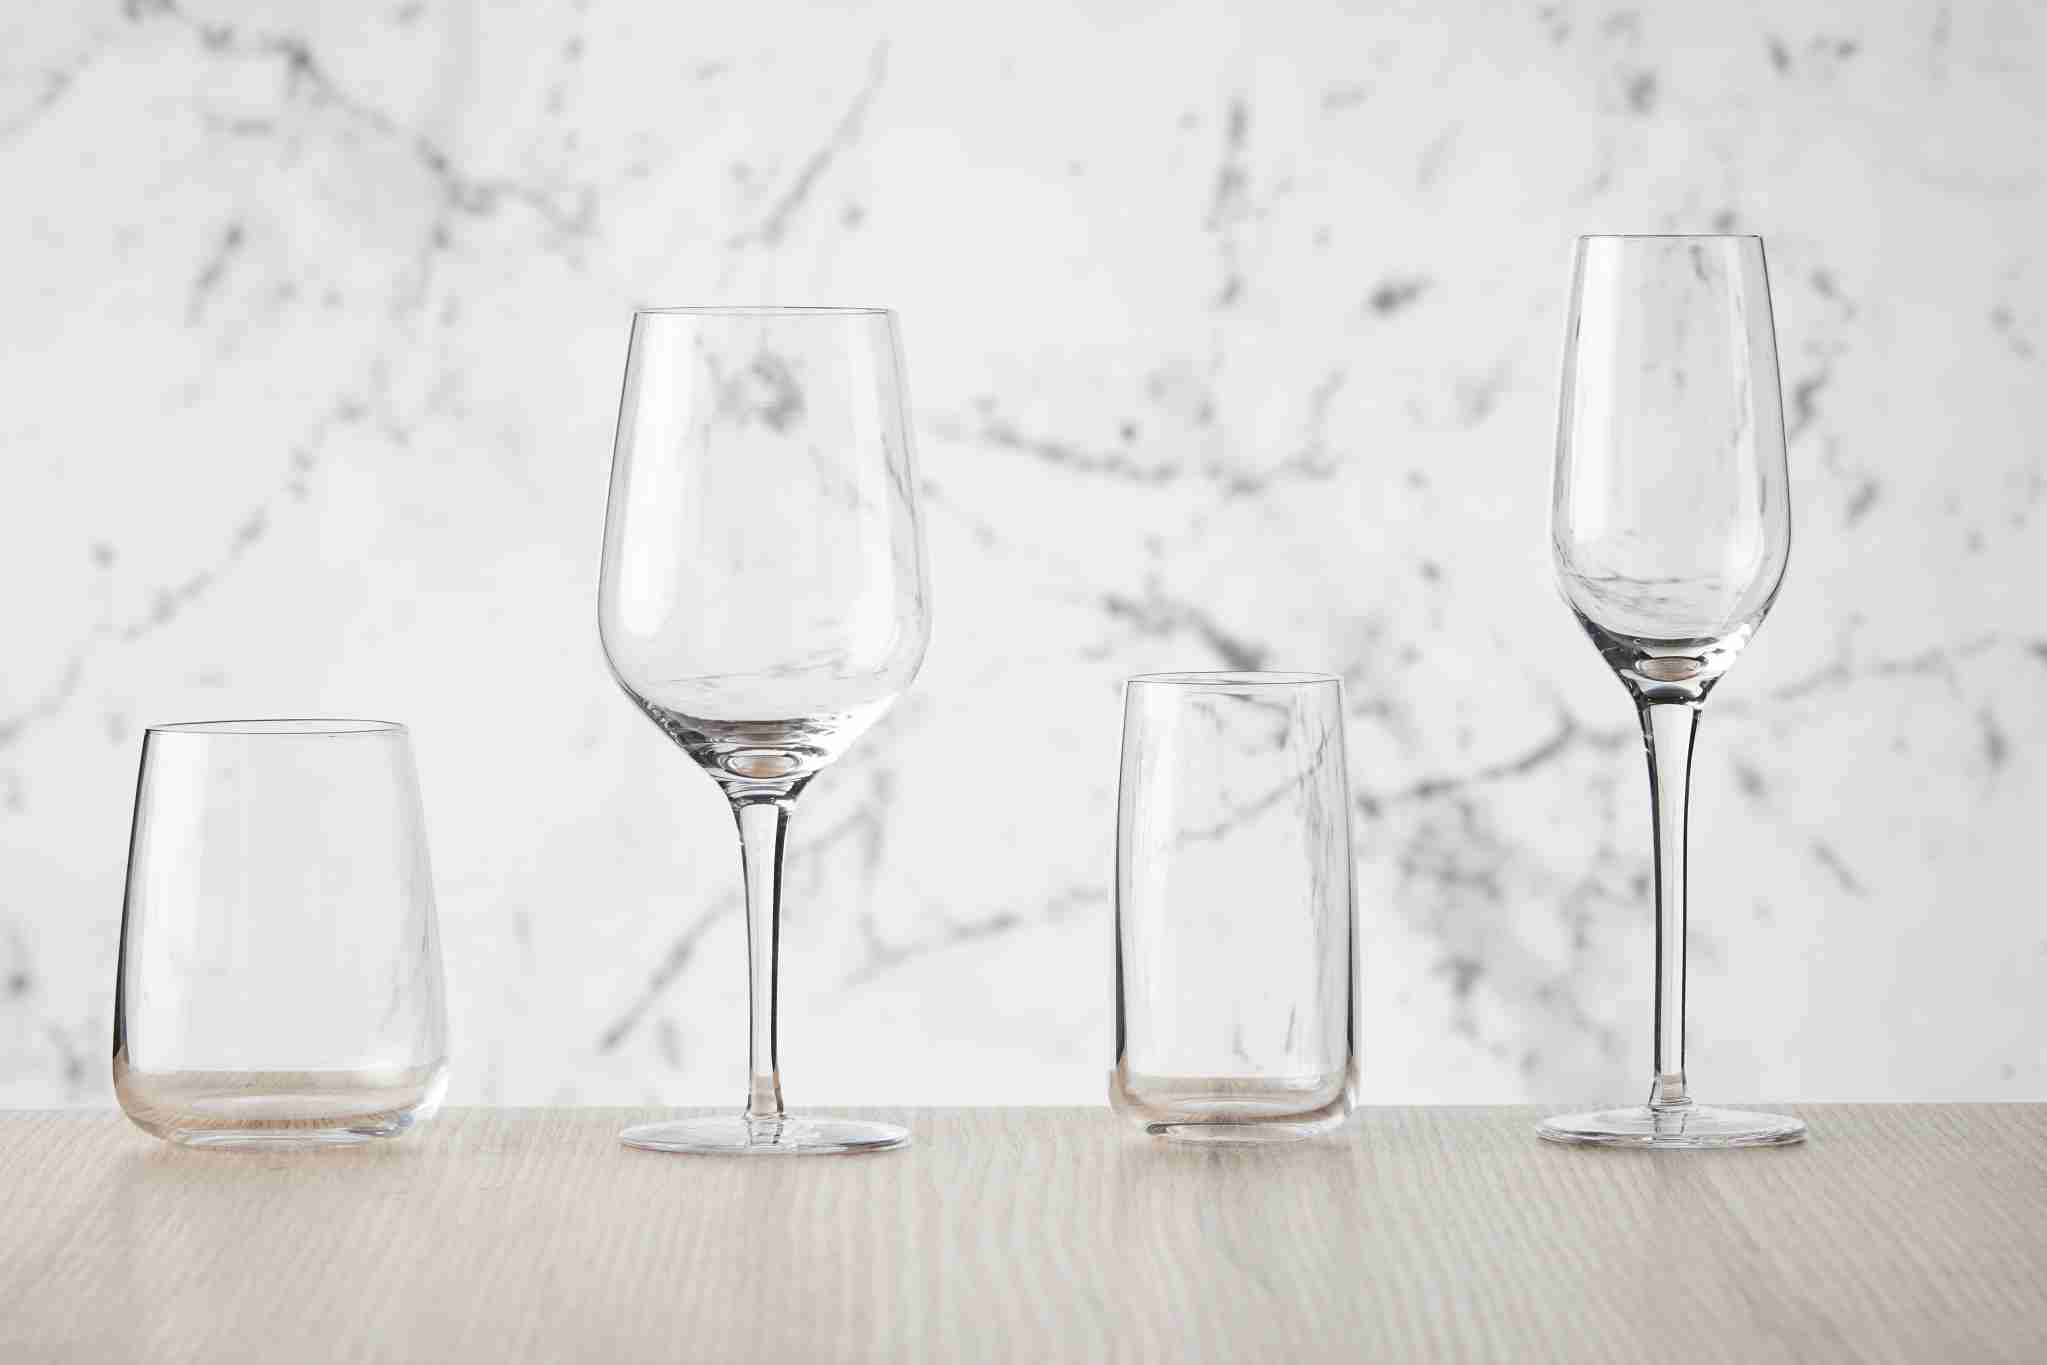 The redesign included a new line of wine glasses. Image courtesy of Qantas.